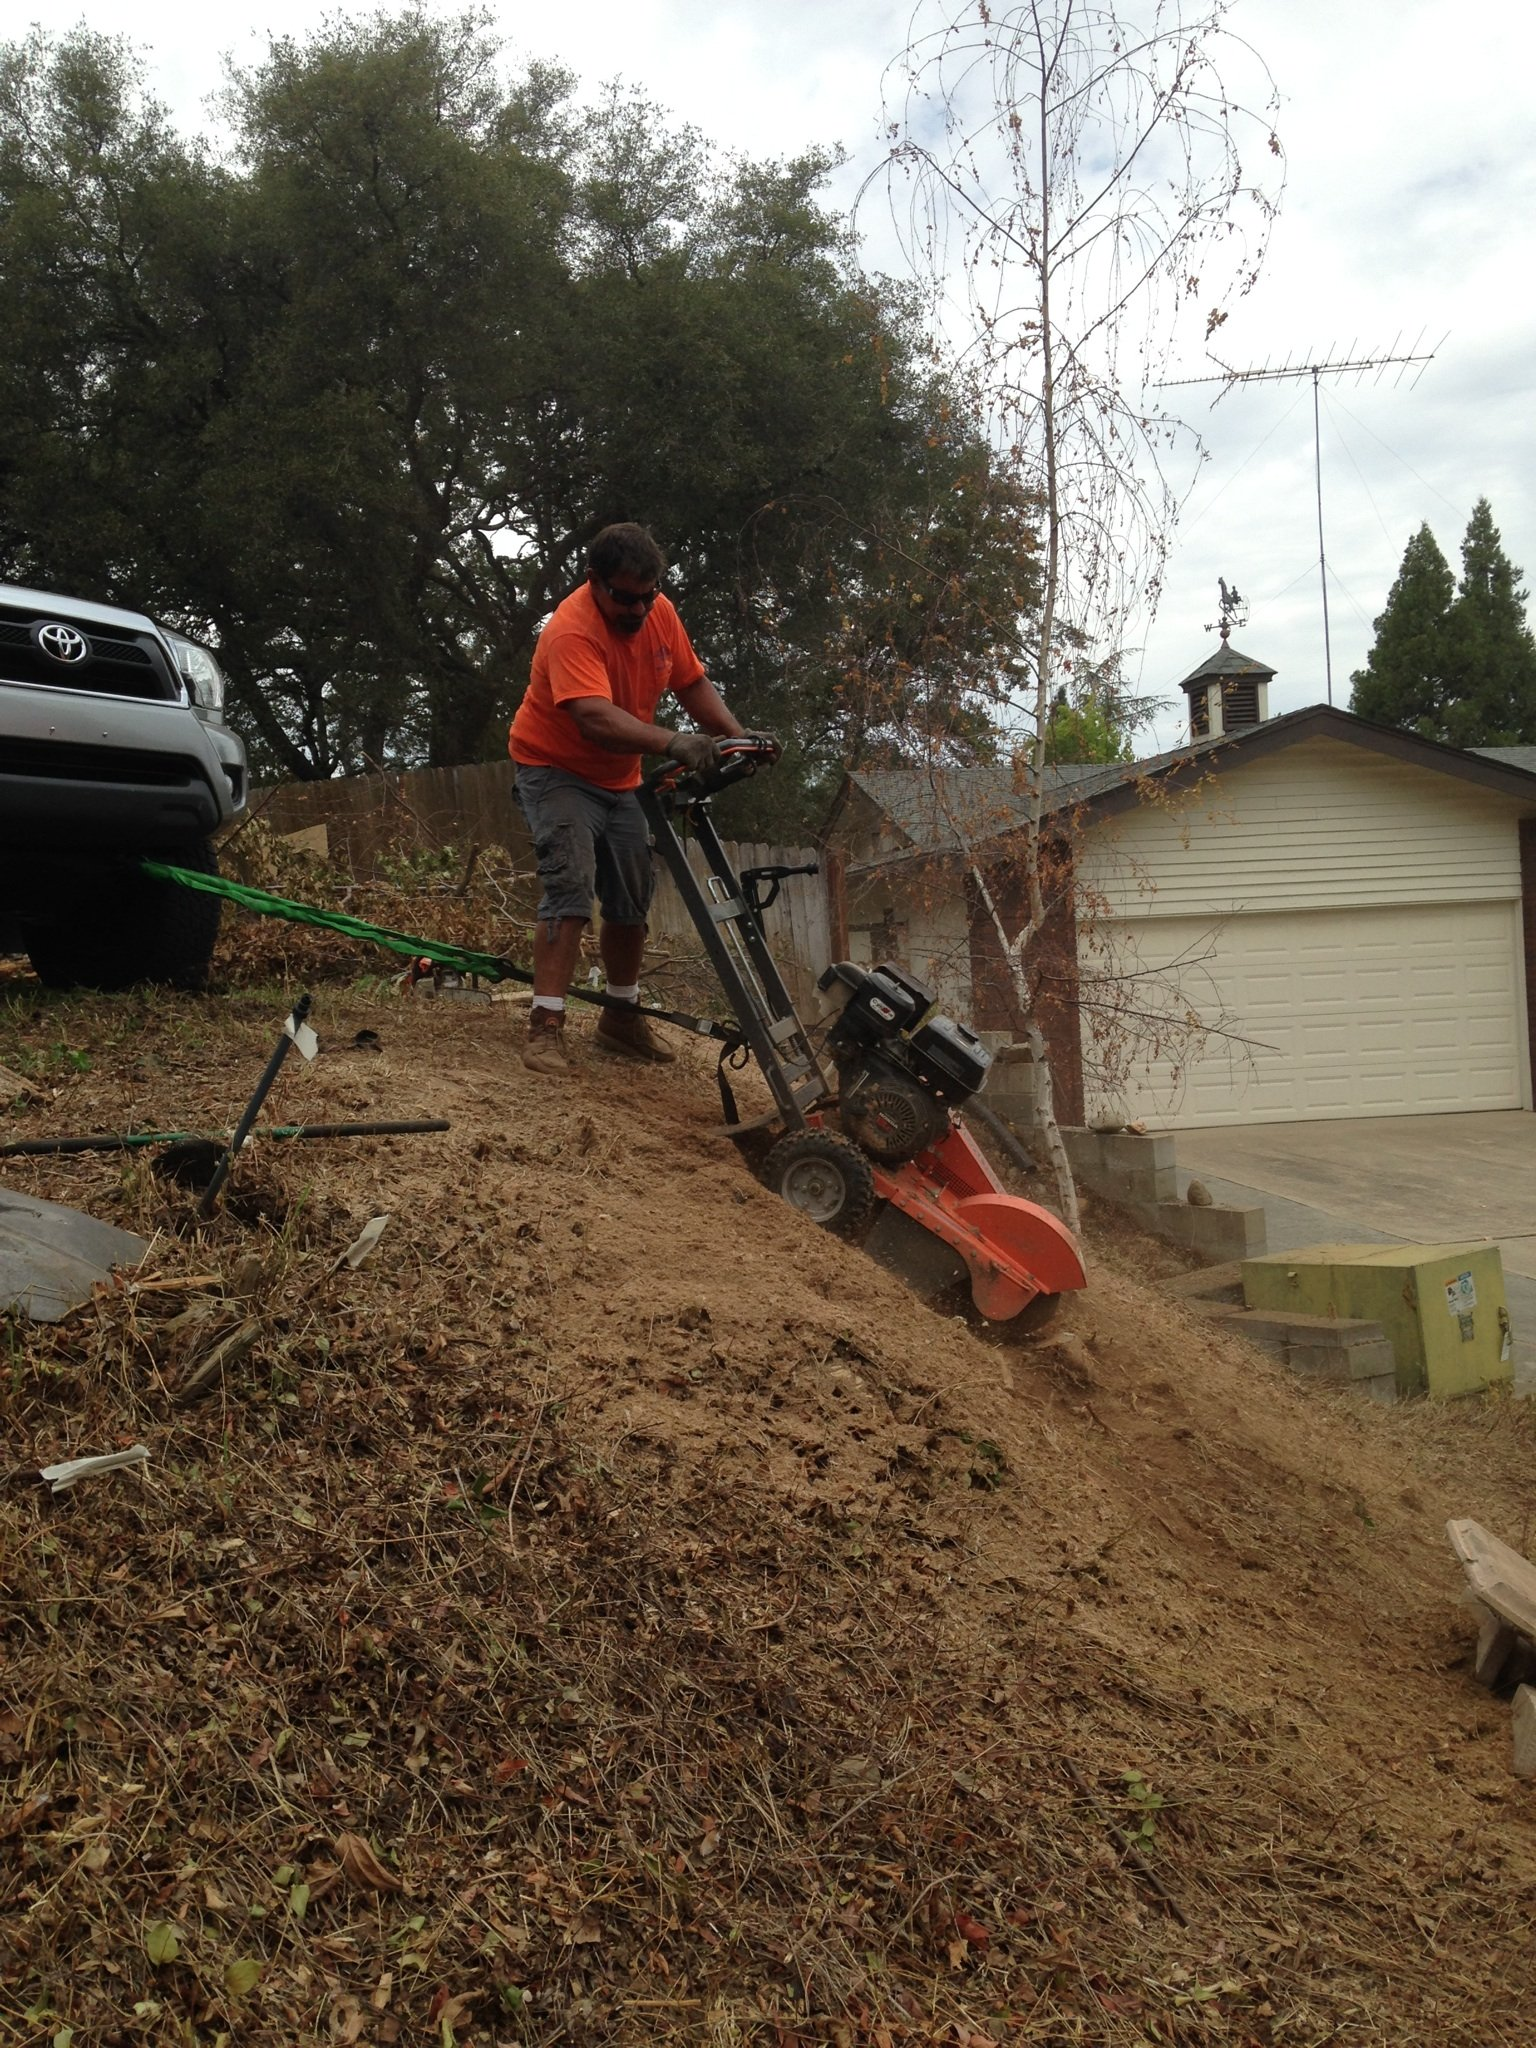 Unique Arbor - Tree Care Services Granite Bay, Colfax, Lincoln, Roseville, Rocklin, Loomis, Sacramento Tree Service Granite Bay Granite Bay Rocklin Roseville Tree Service Granite Bay Granite Bay Rocklin Roseville